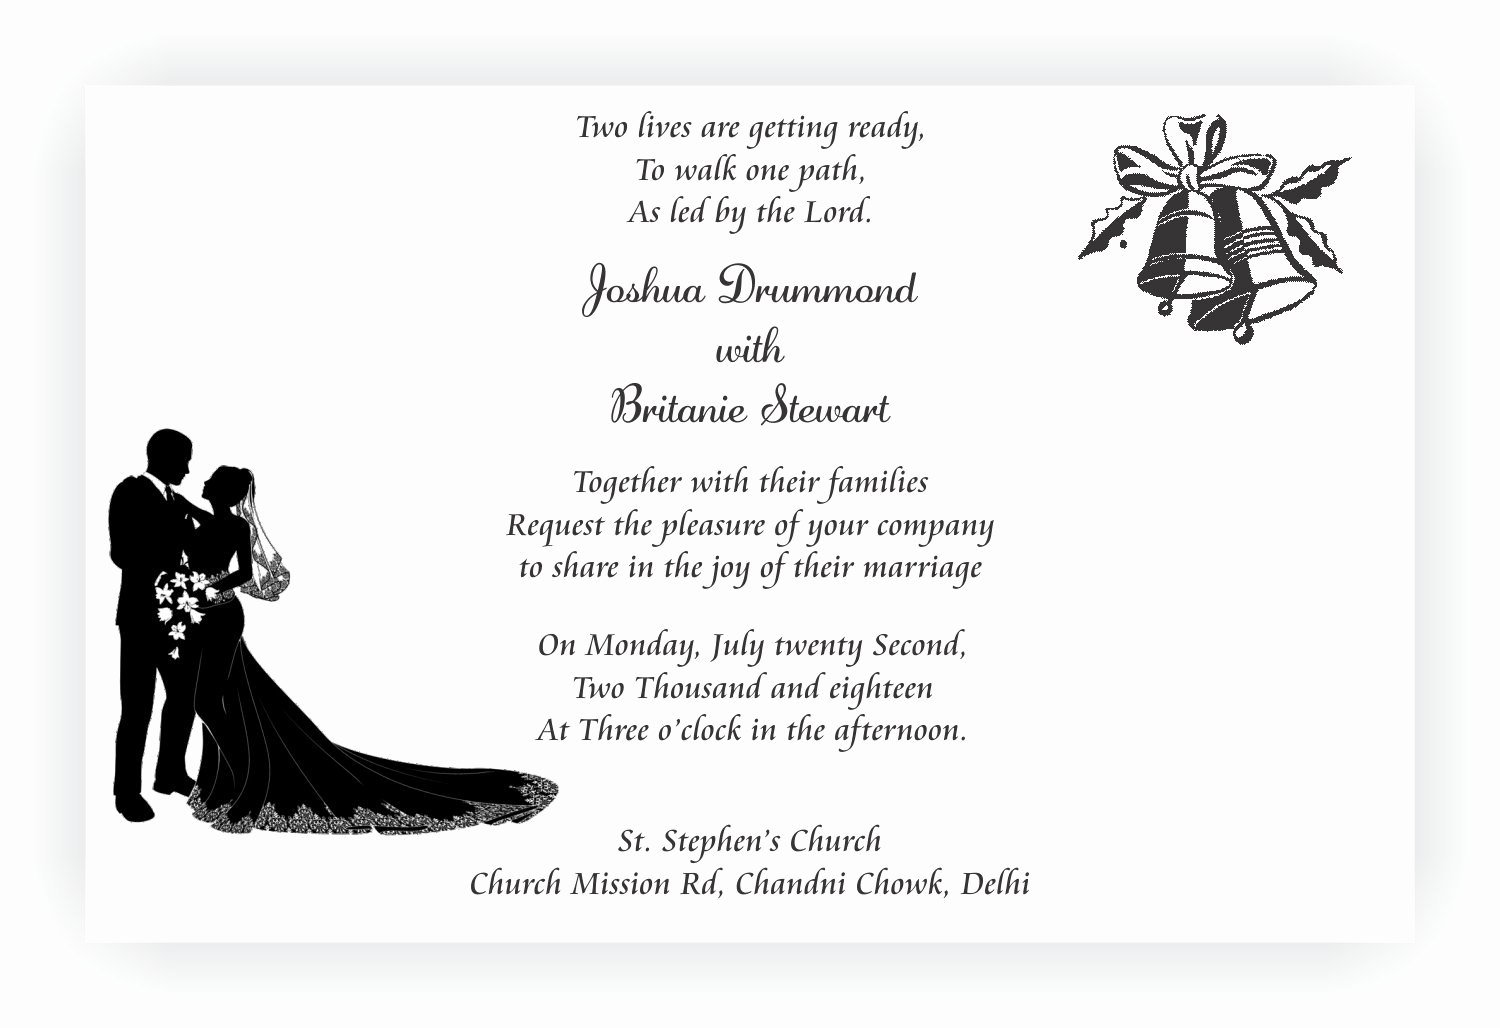 Christian Wedding Invitation Wording Best Of Christian Wedding Invitation Wordings – Chococraft